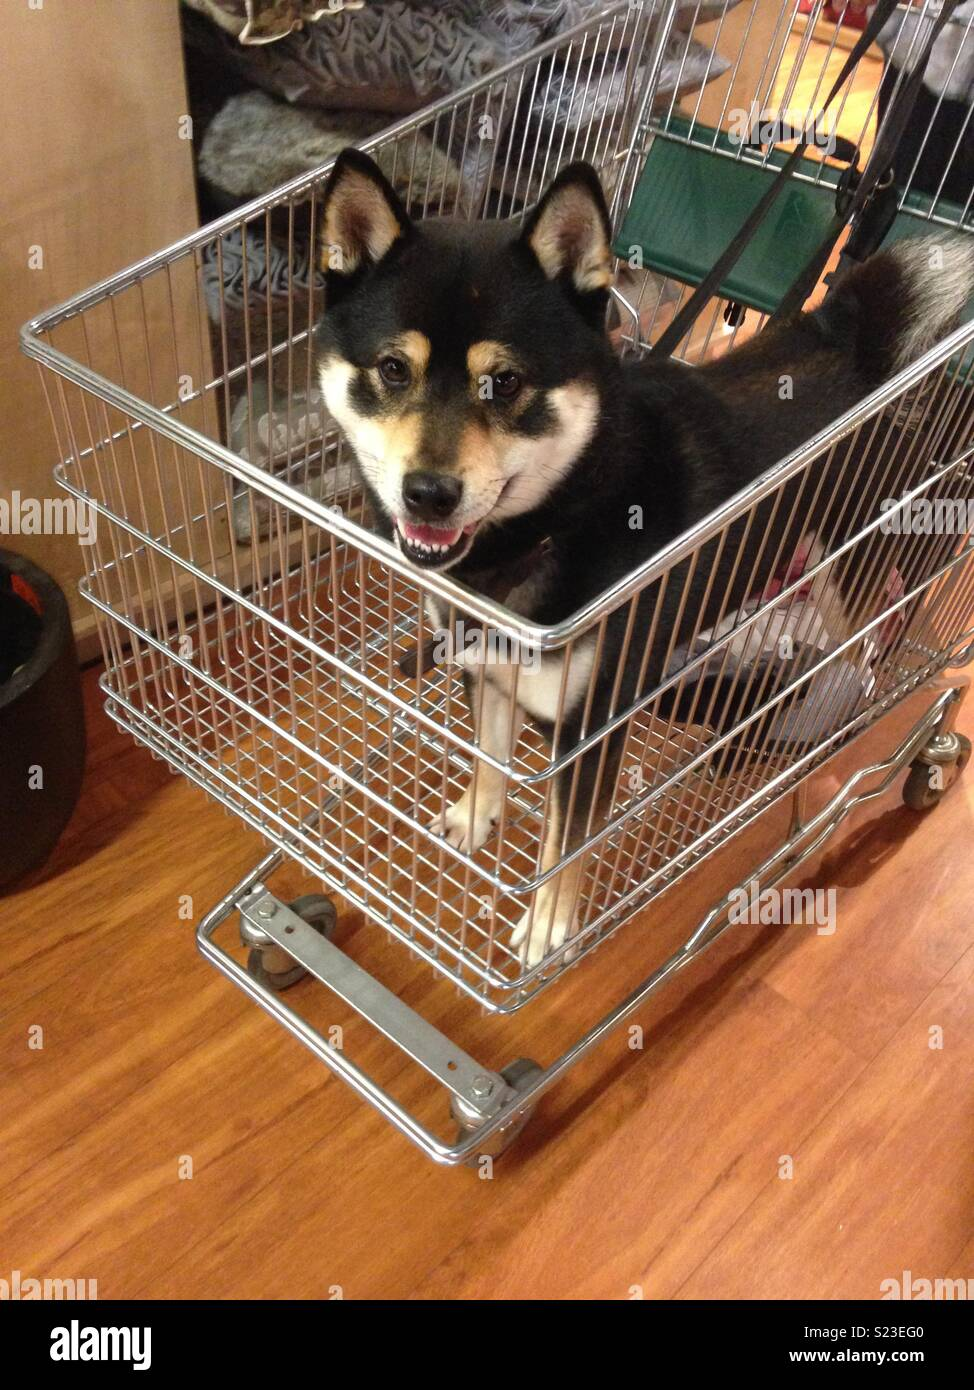 Dog in a shopping trolley Stock Photo: 311093216 - Alamy